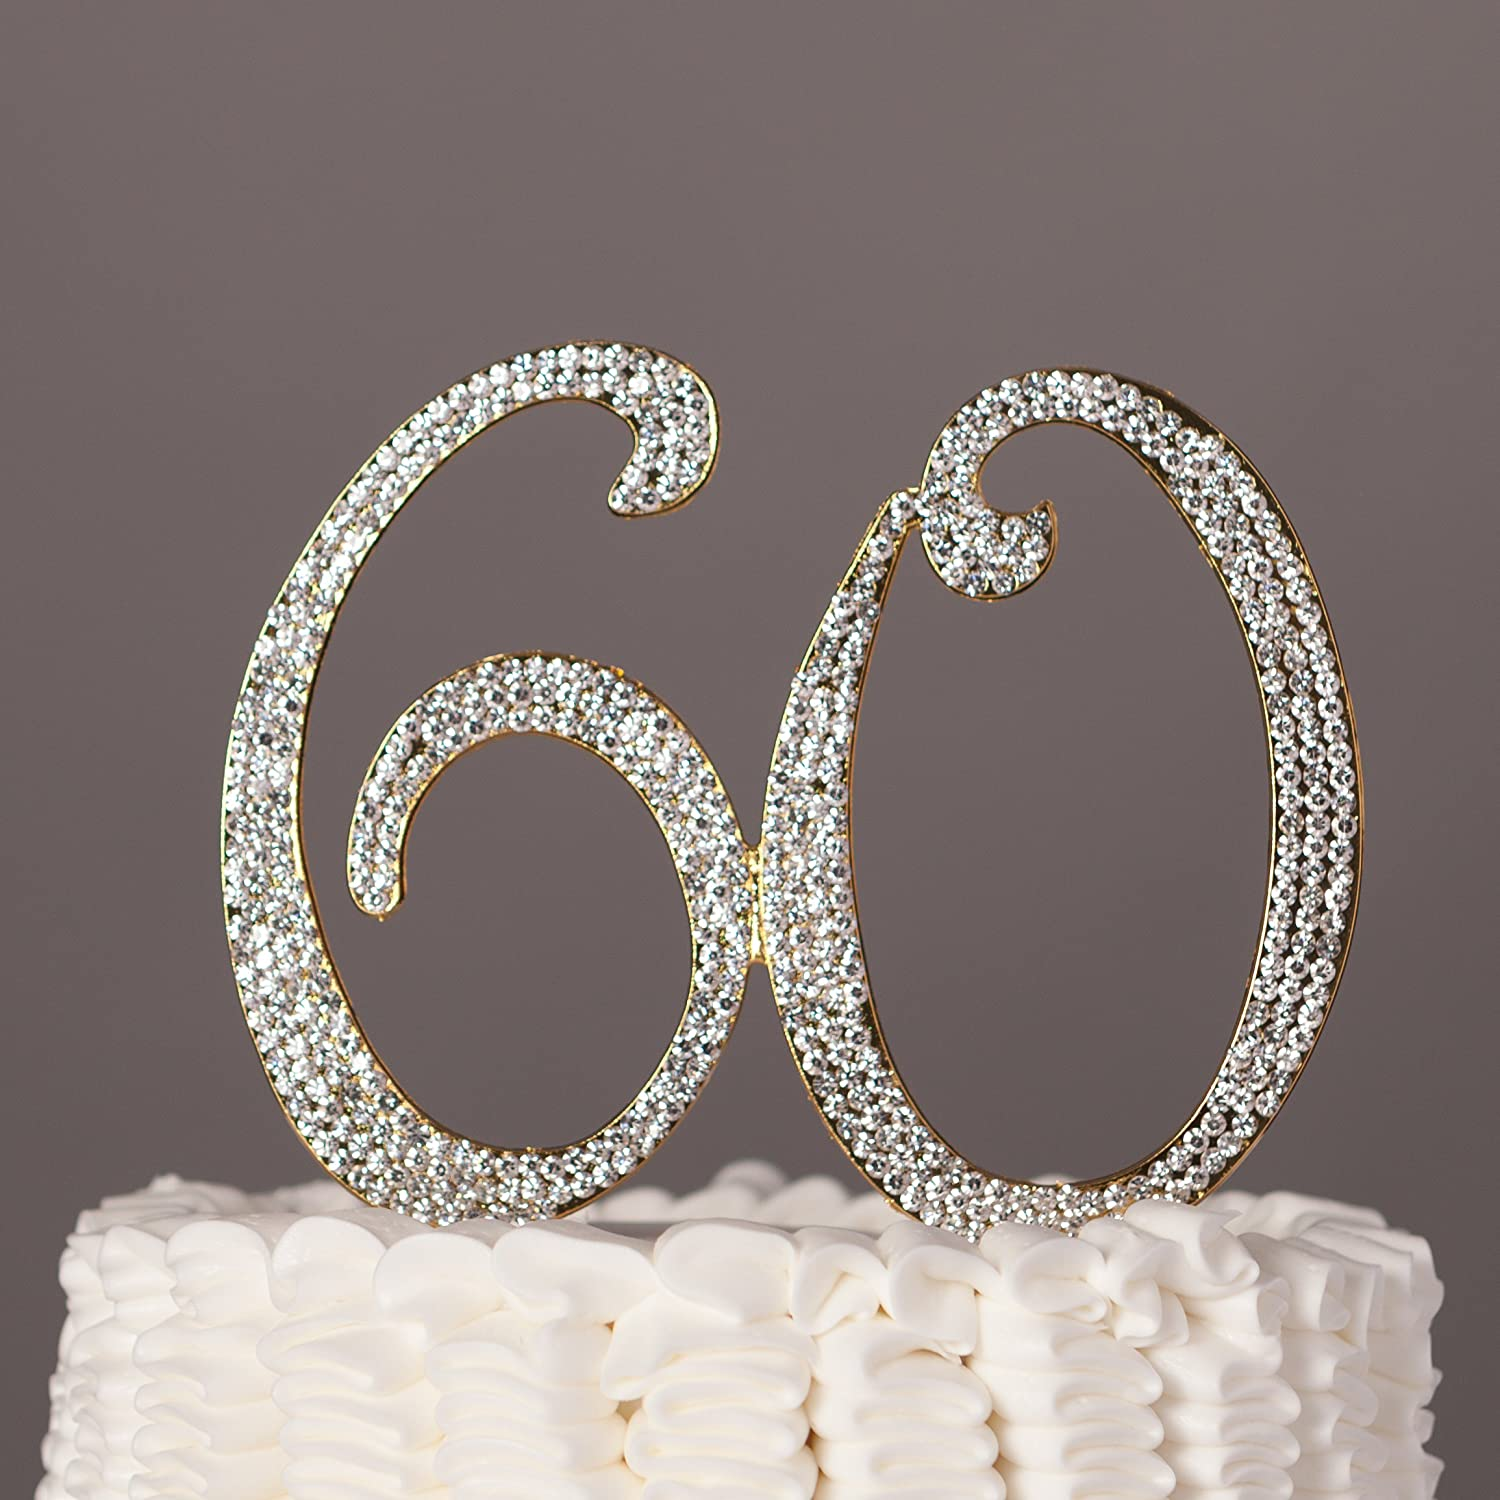 60 Cake Topper for 60th Birthday or Anniversary Gold Party ...